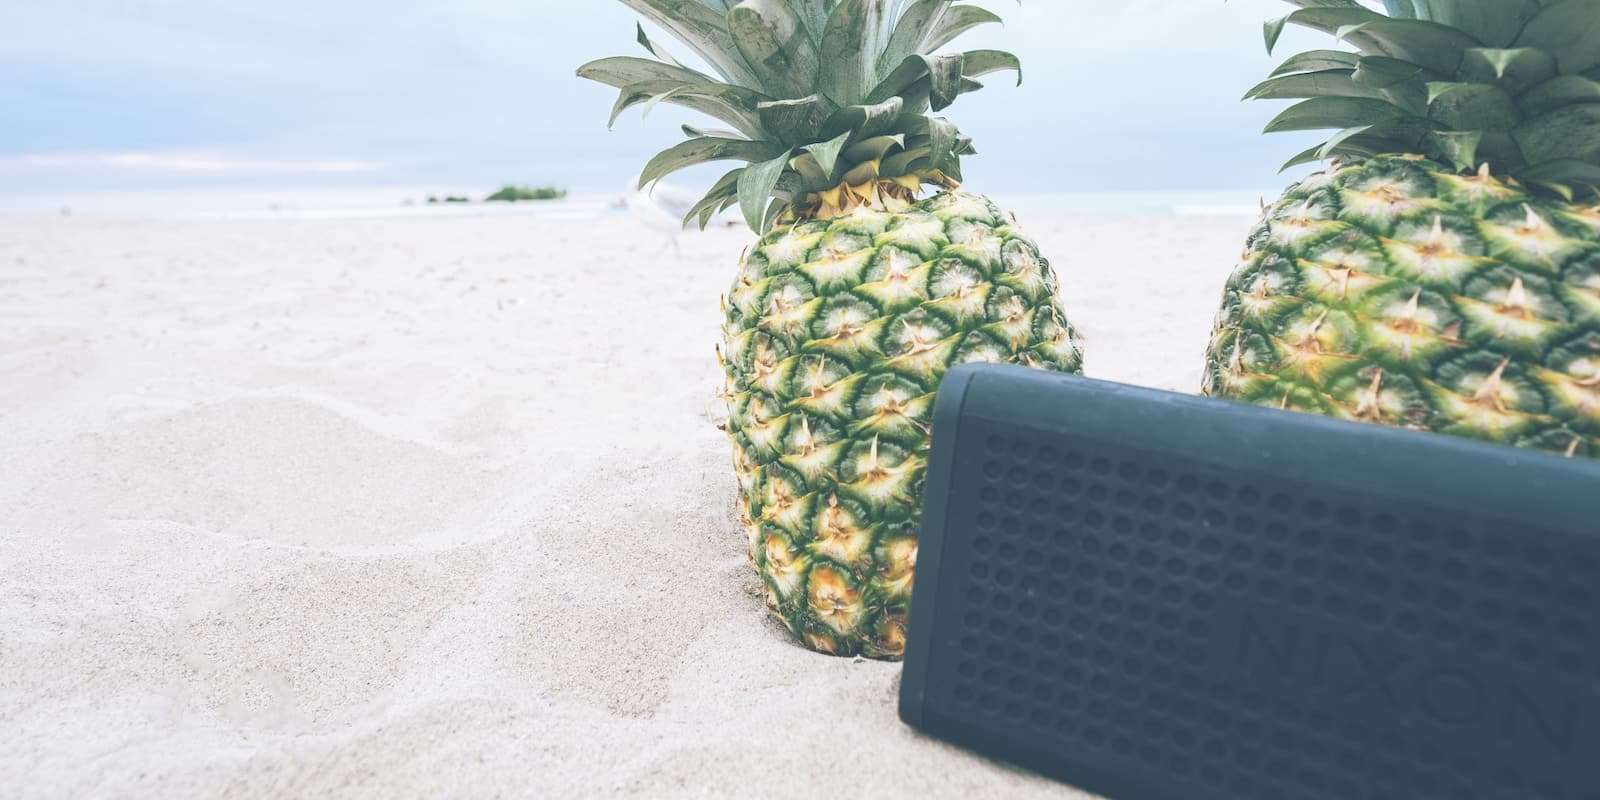 Pick up the Bluetooth speaker that fits your summer plans.